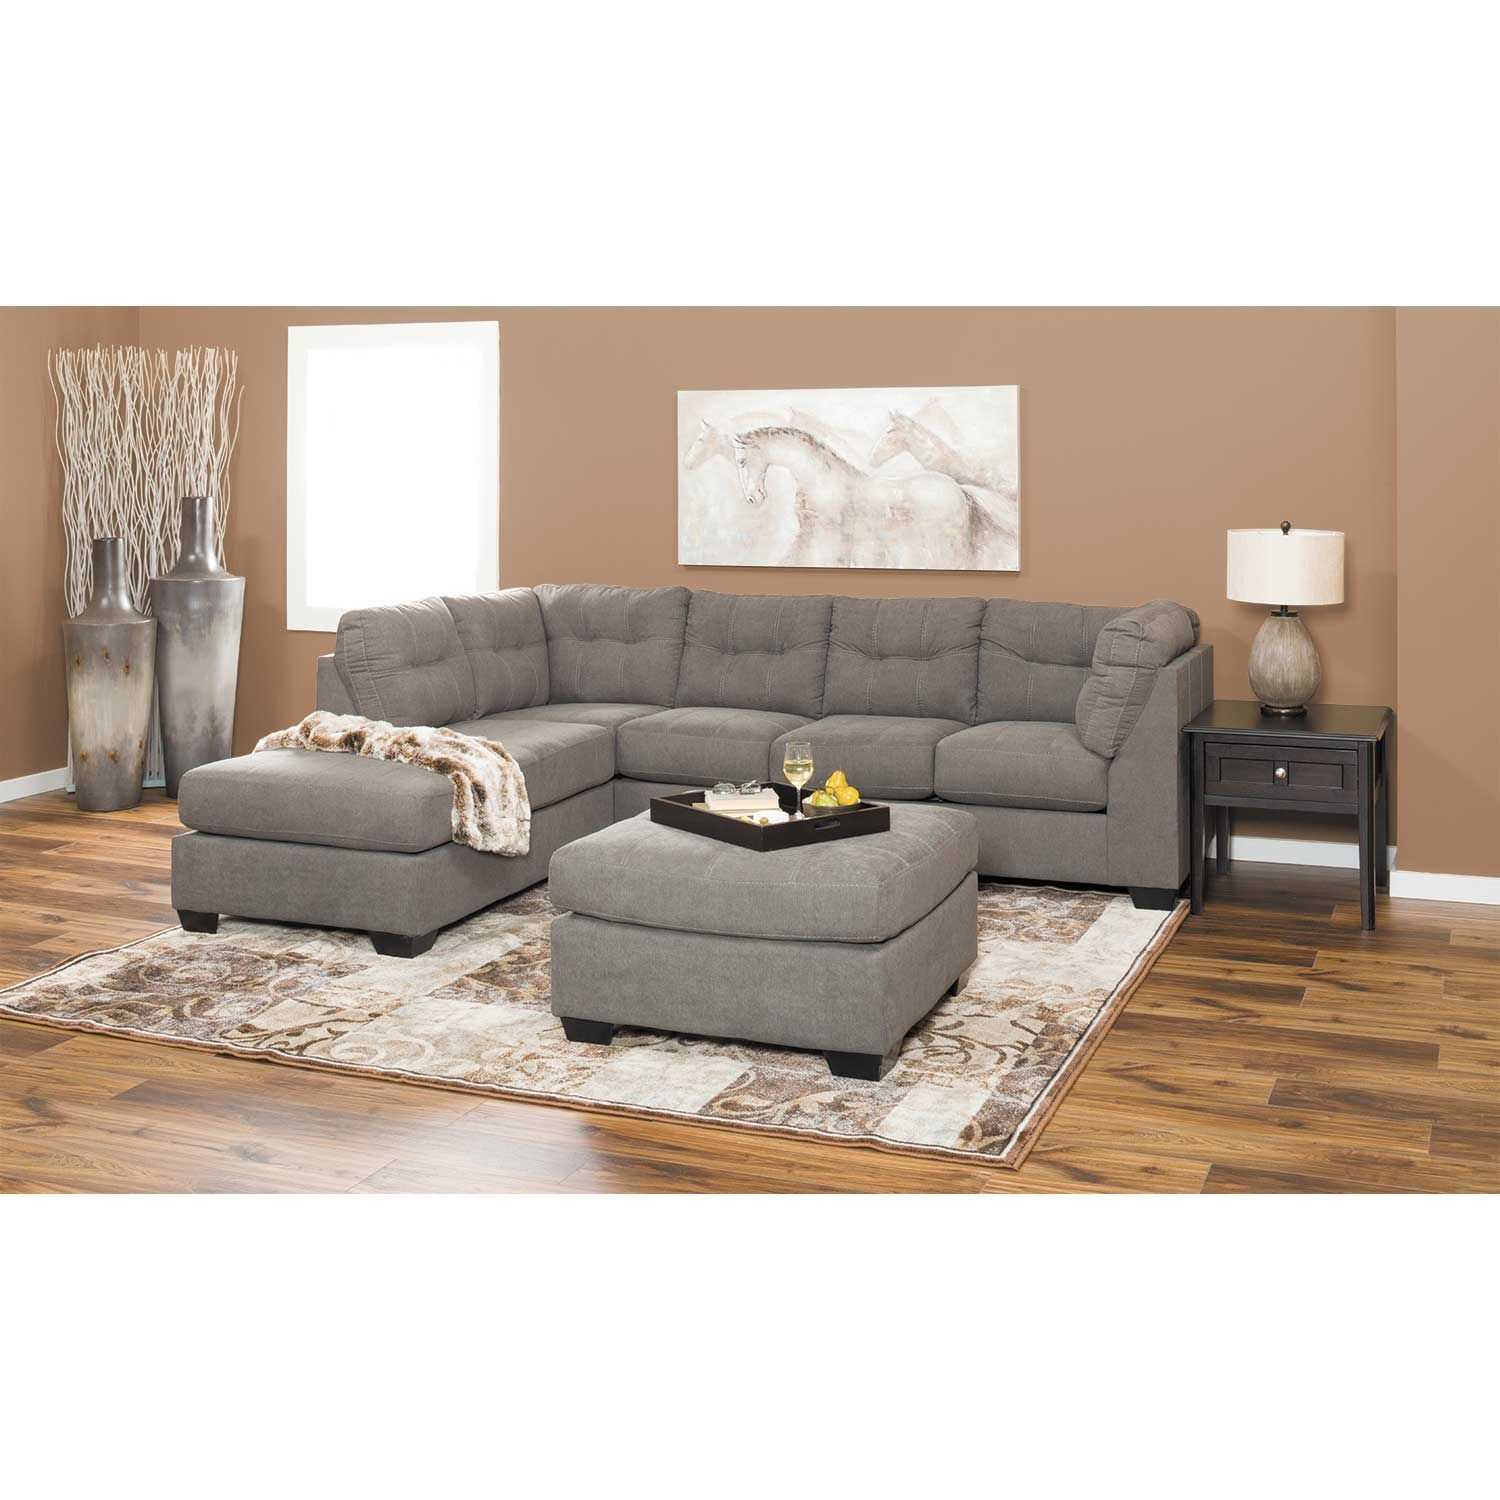 Maier Charcoal 2 Piece Sectional With Laf Chaise 4520016 With Regard To Avery 2 Piece Sectionals With Laf Armless Chaise (View 10 of 15)